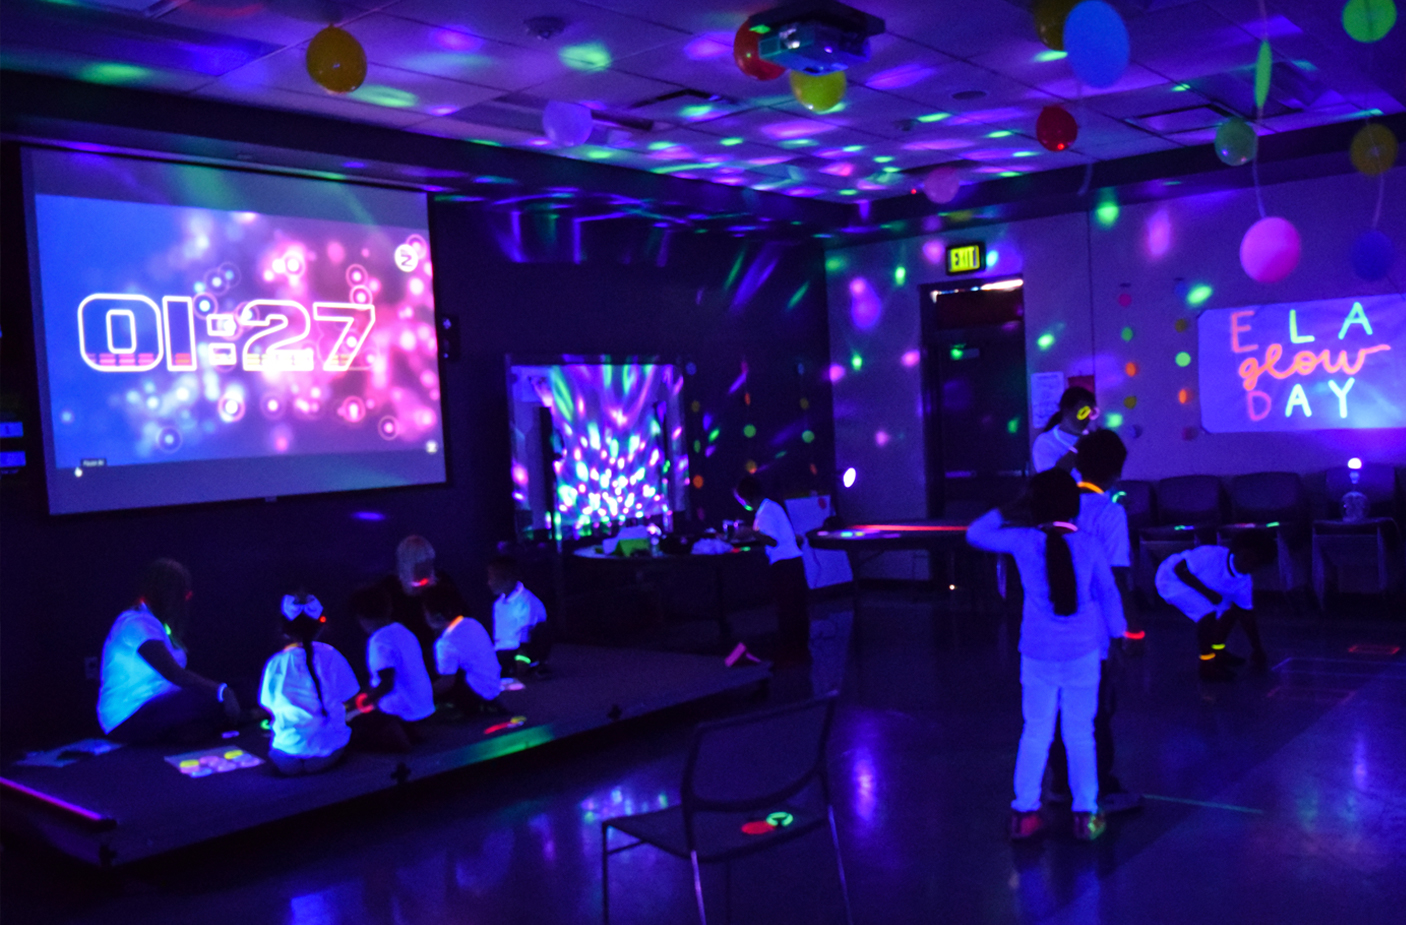 We see multiple lights in dark room on the wall, ceiling and floor. We can see some students sitting on the floor and some are standing. Their white shirts and pants are glowing that are reflected from blacklights.